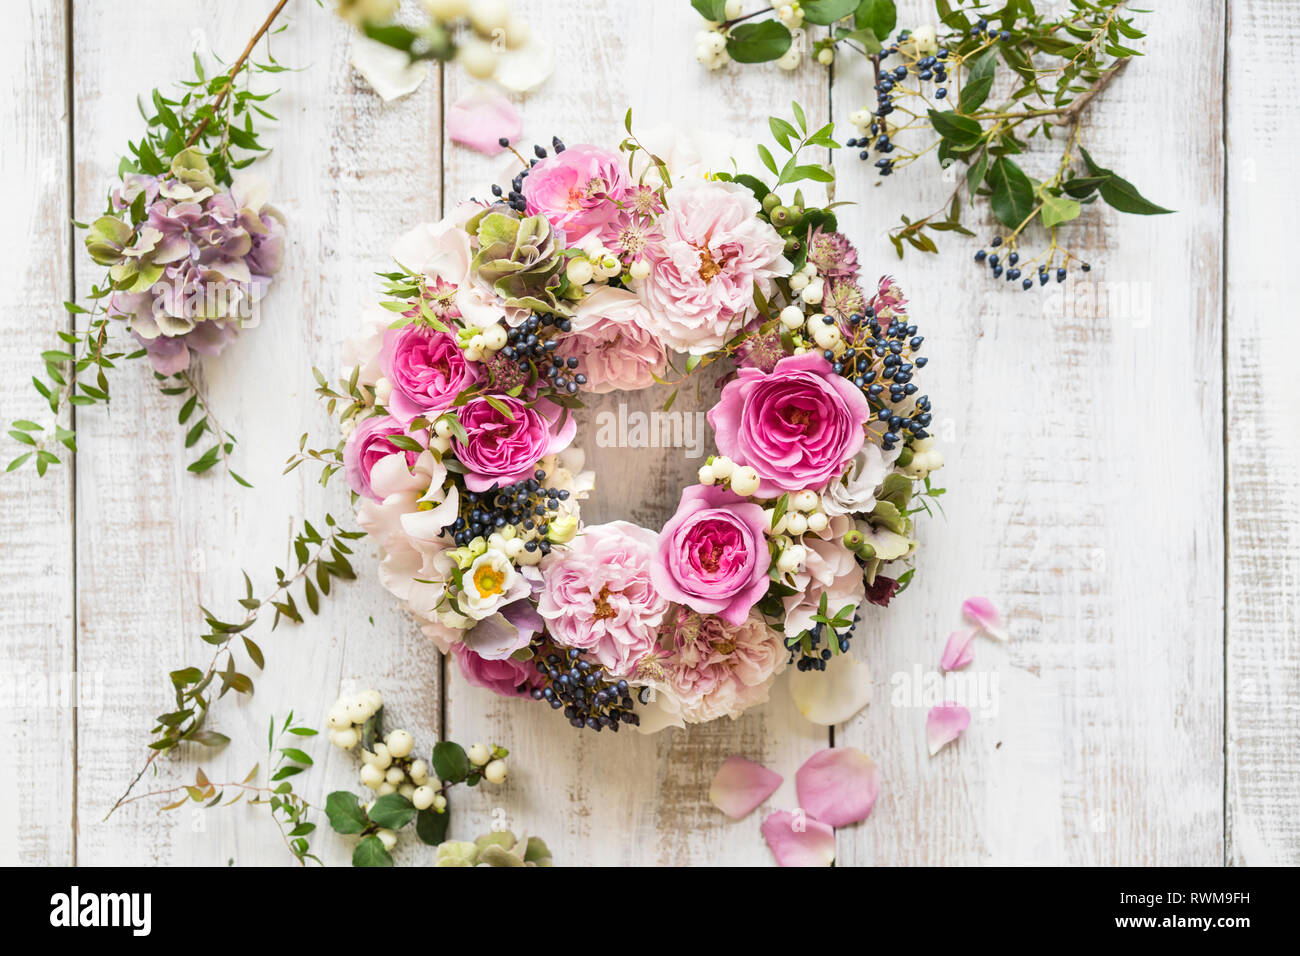 Flower arrangement - Stock Image